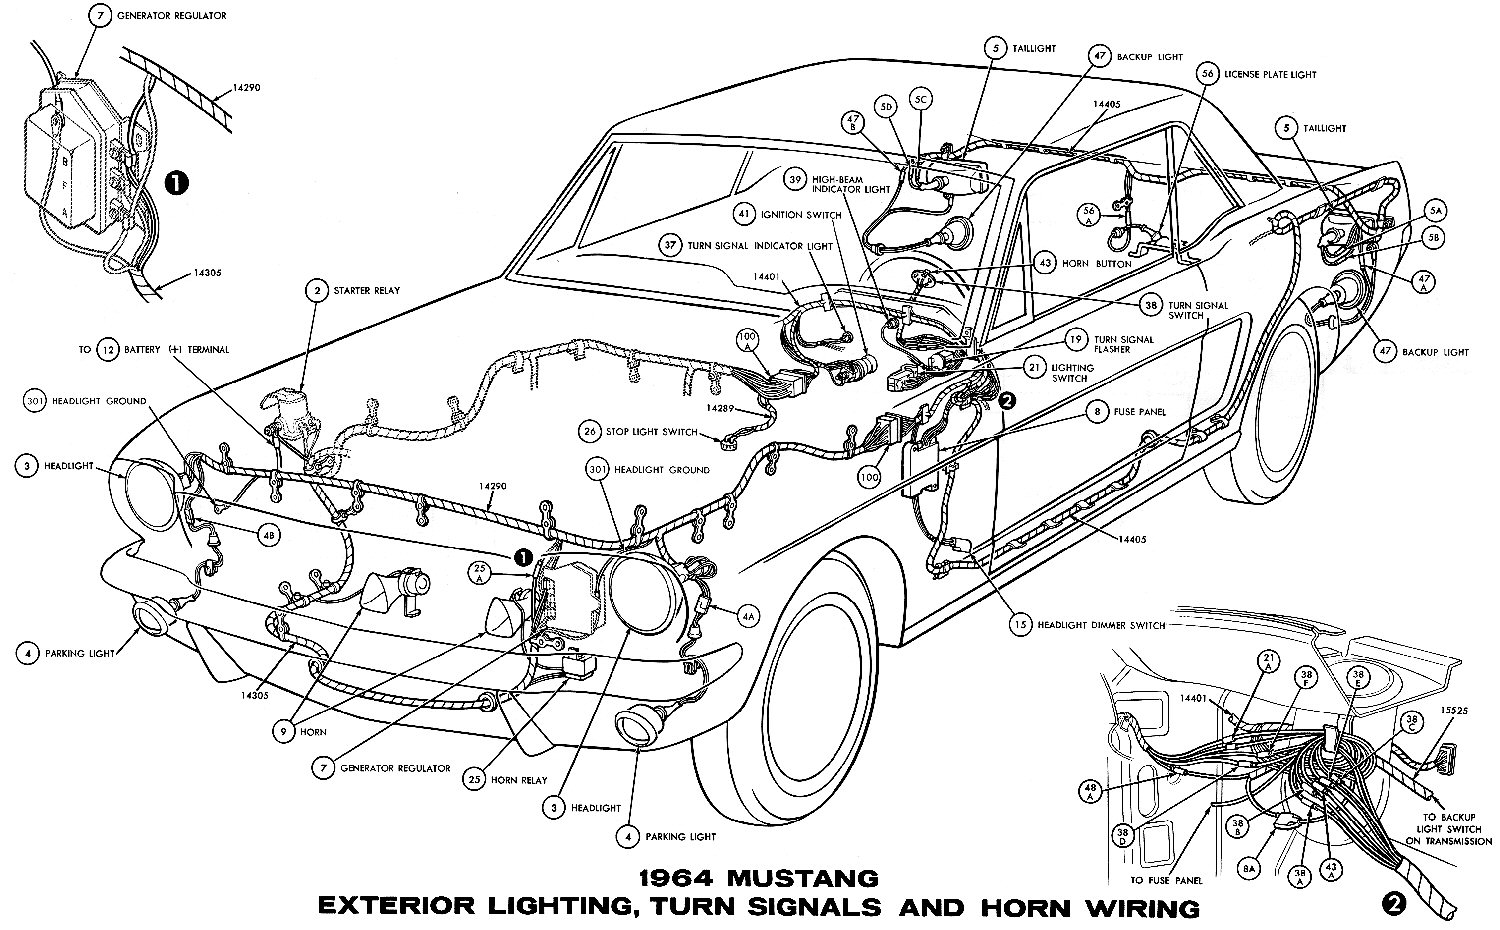 hight resolution of 1964 mustang wiring diagrams average joe restoration 64 mustang turn signal wiring diagram